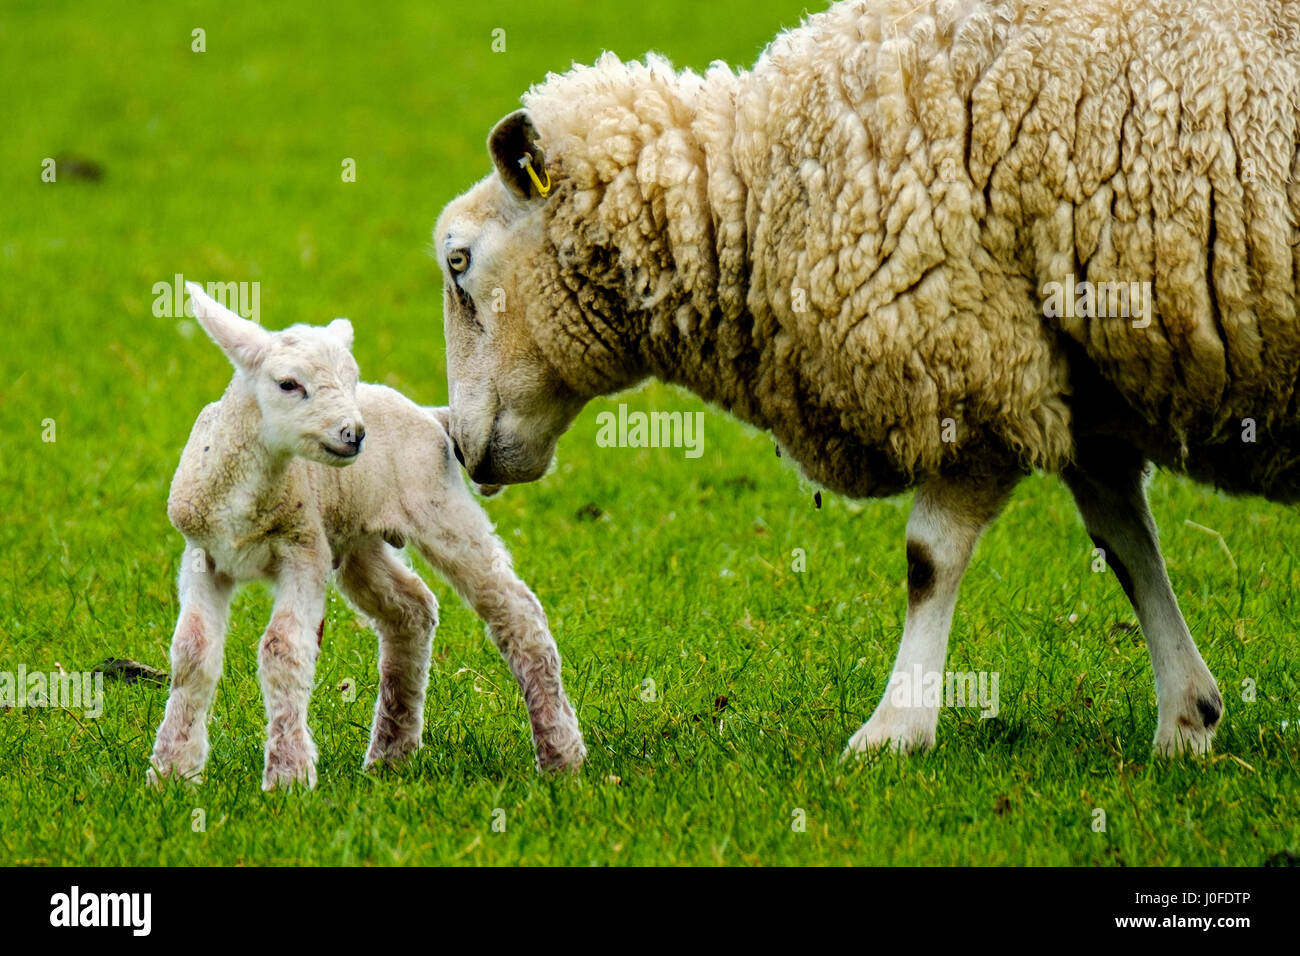 Ewe tends to her newly born lamb in springtime - Stock Image